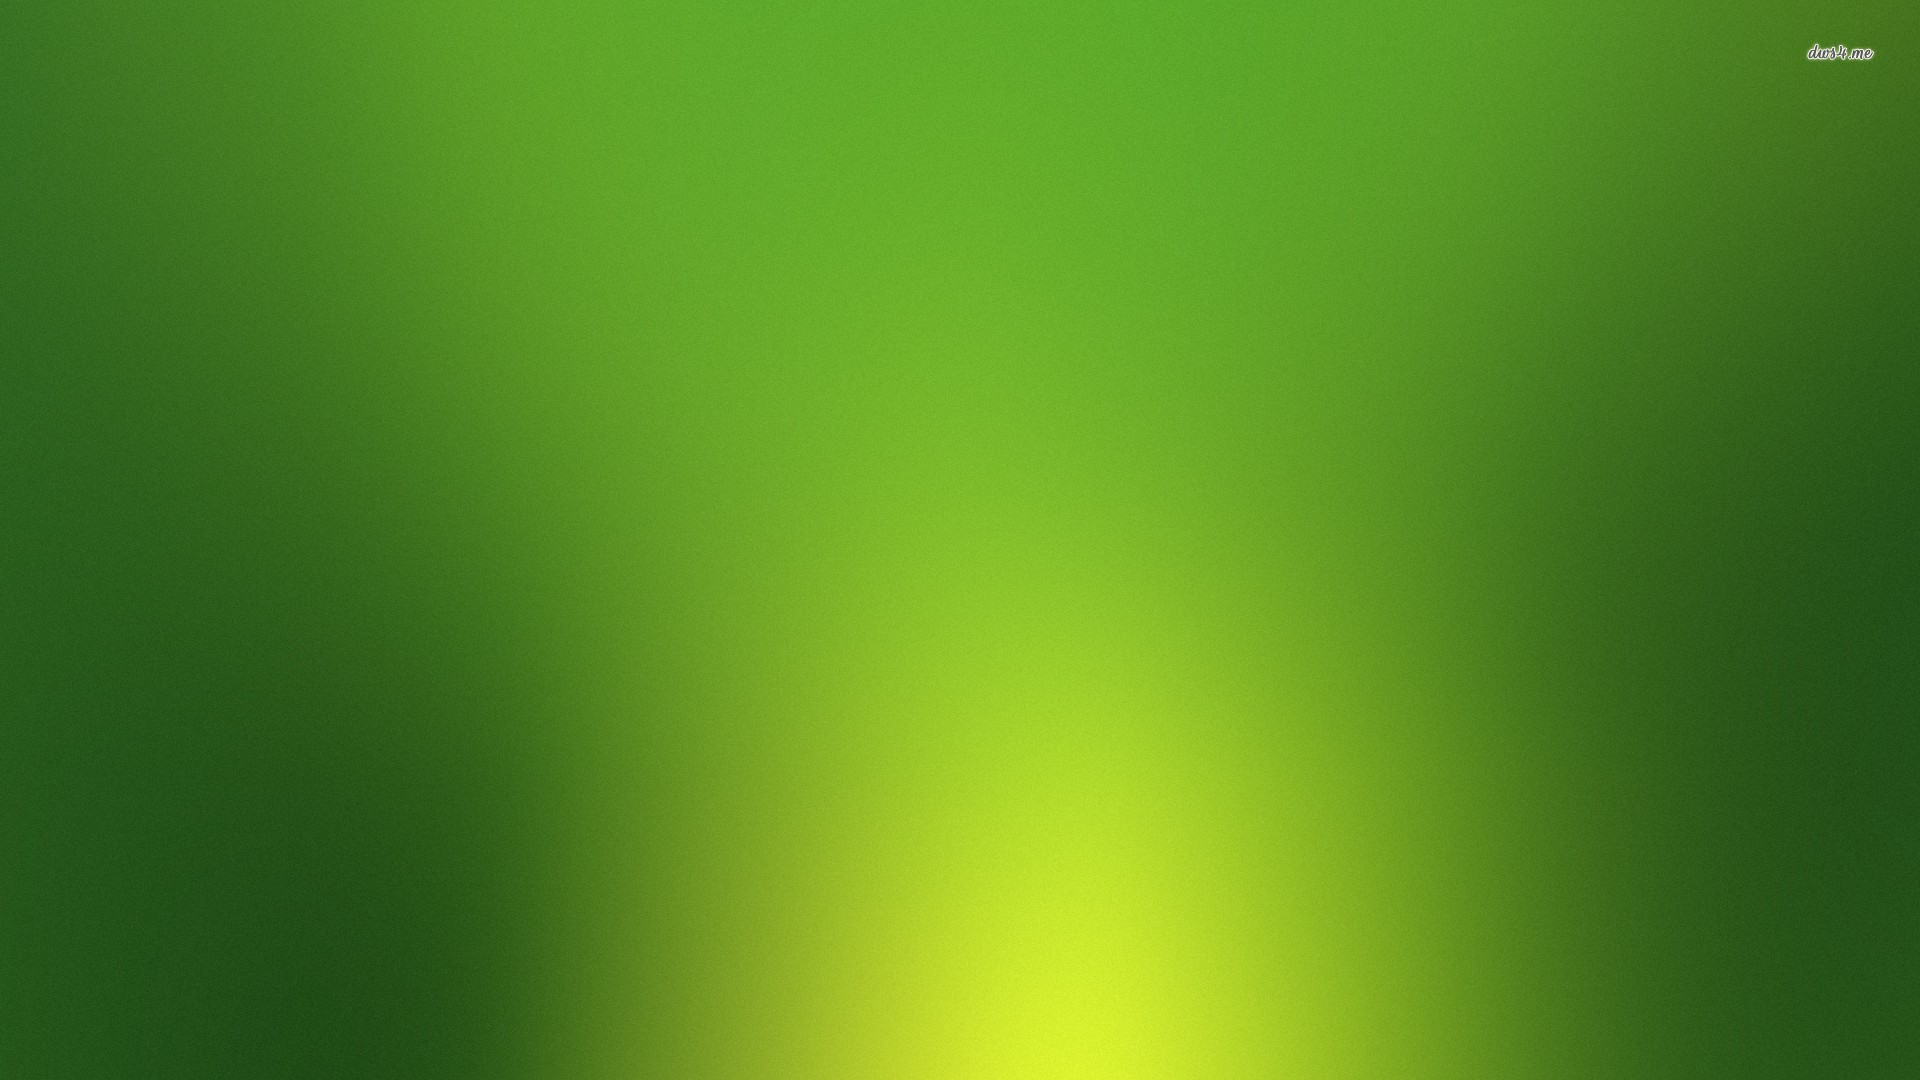 White gradient background download free beautiful for Green and white wallpaper